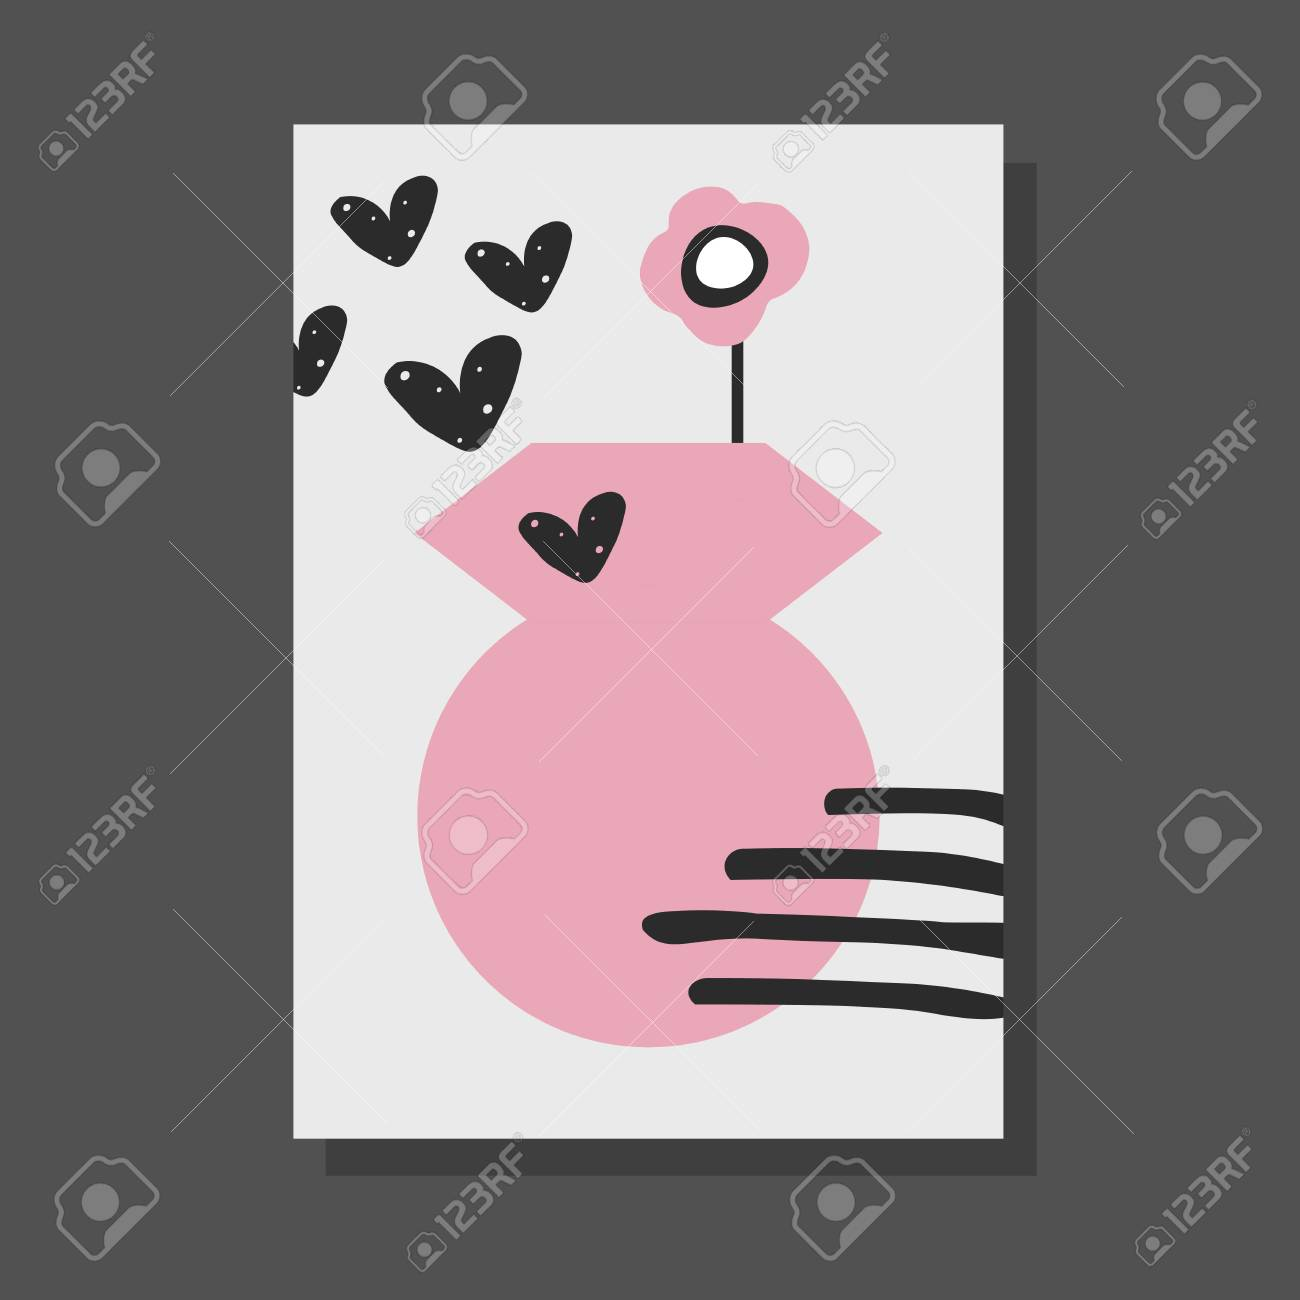 Cute Childish Drawings For Postersbannersgreeting Cards Good